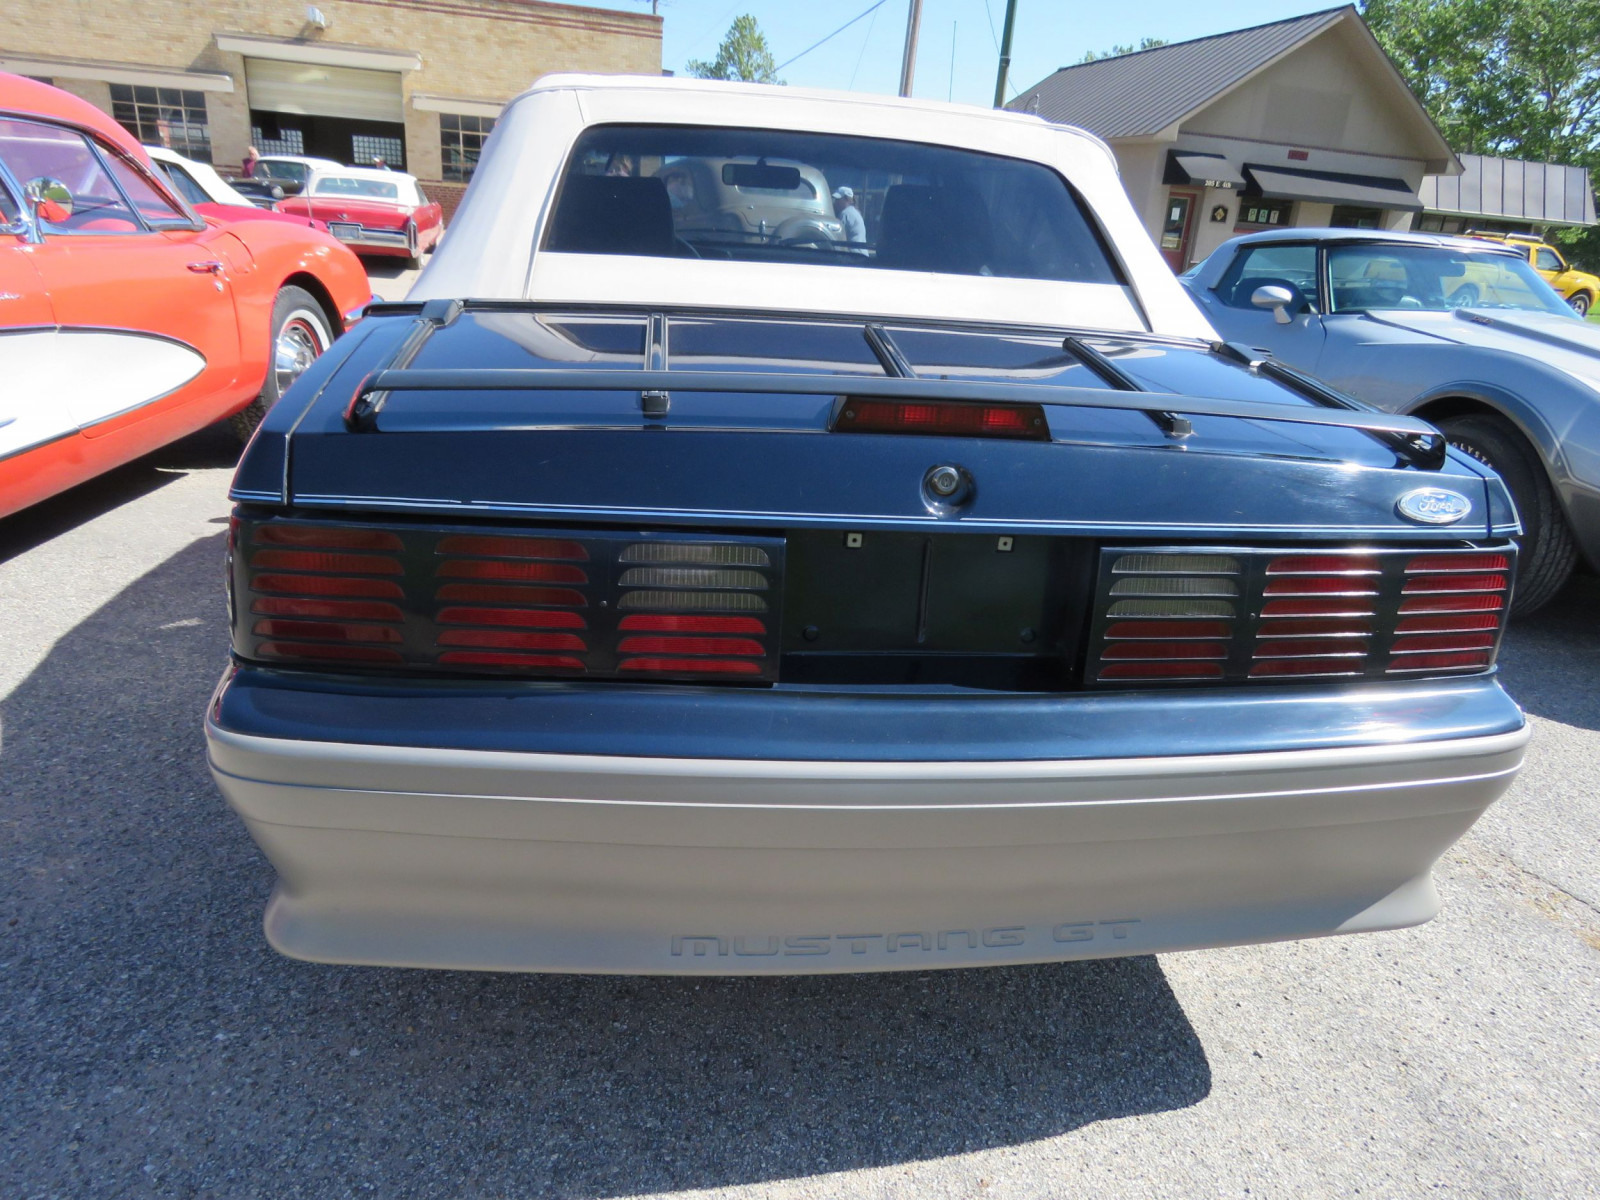 1988 FORD MUSTANG GT 5.0 CONVERTIBLE - Image 6